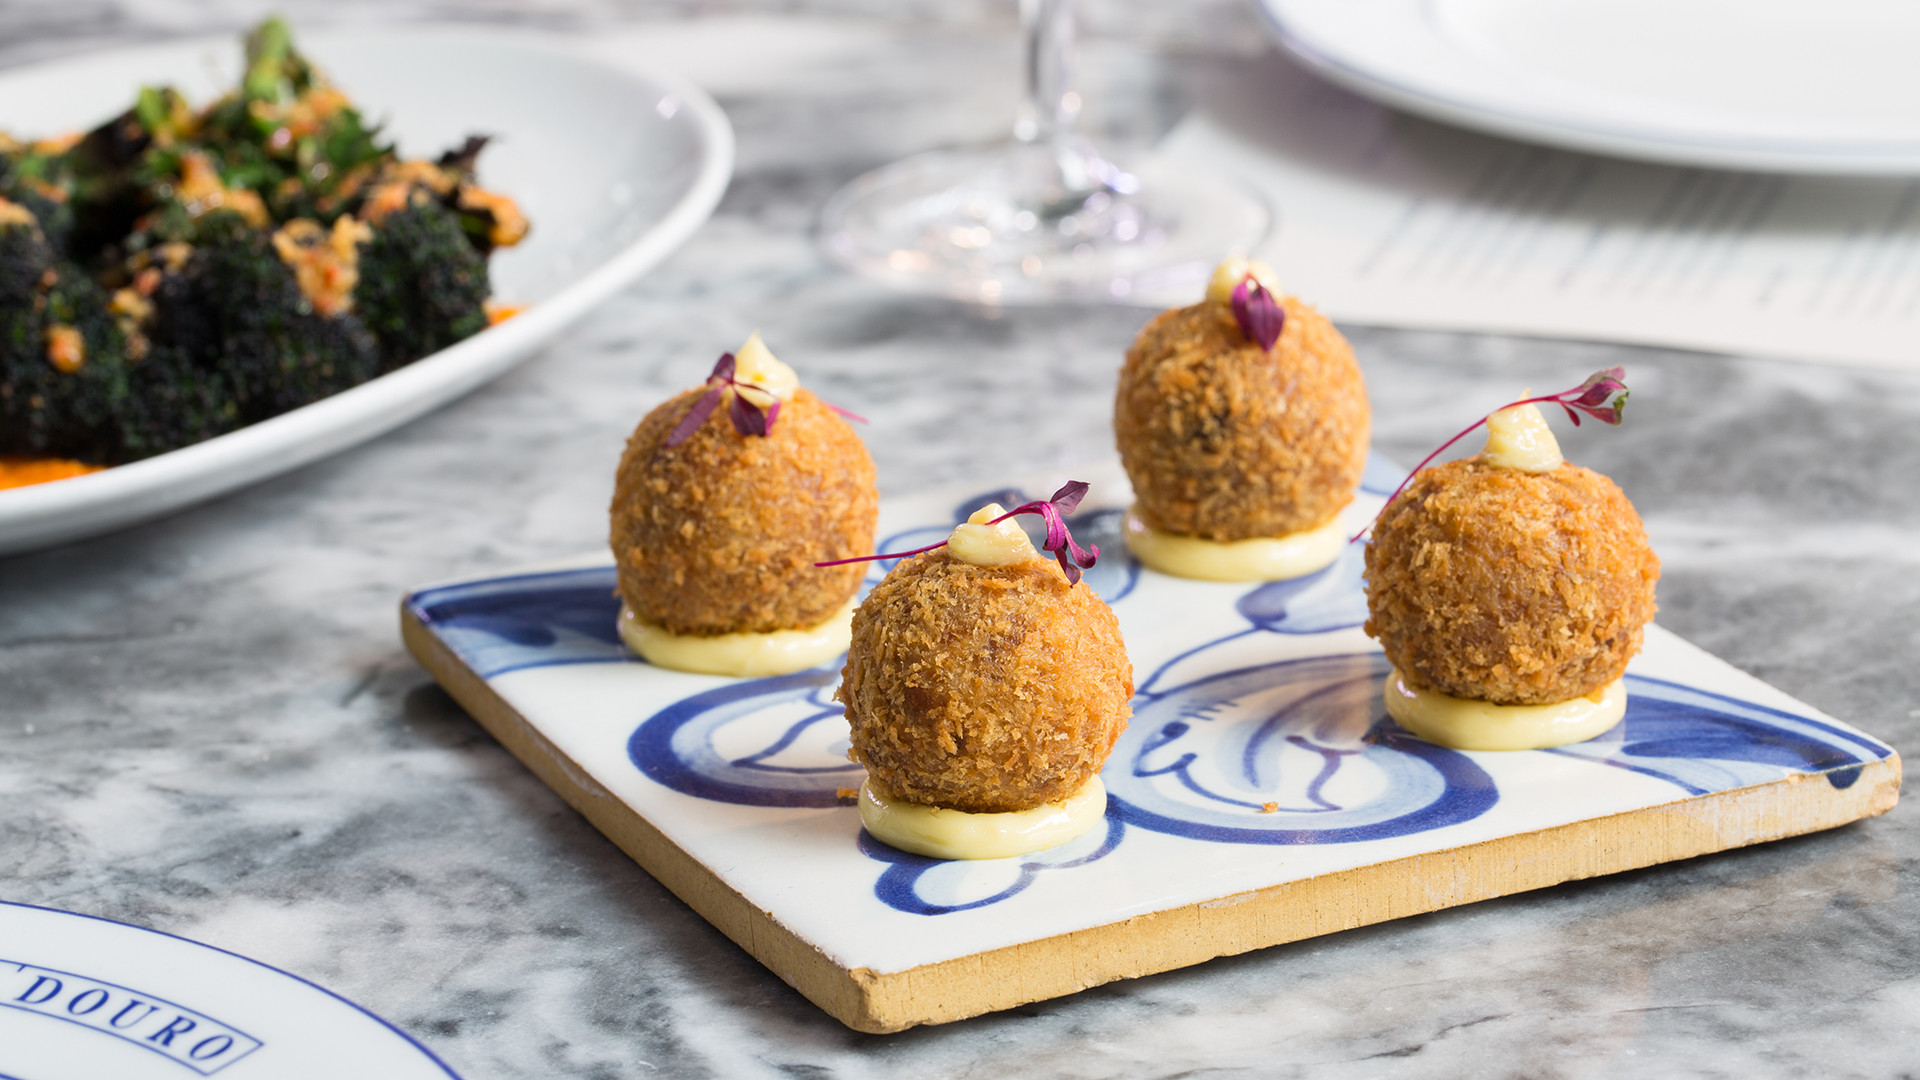 Croquetes de Alheira at Bar Douro